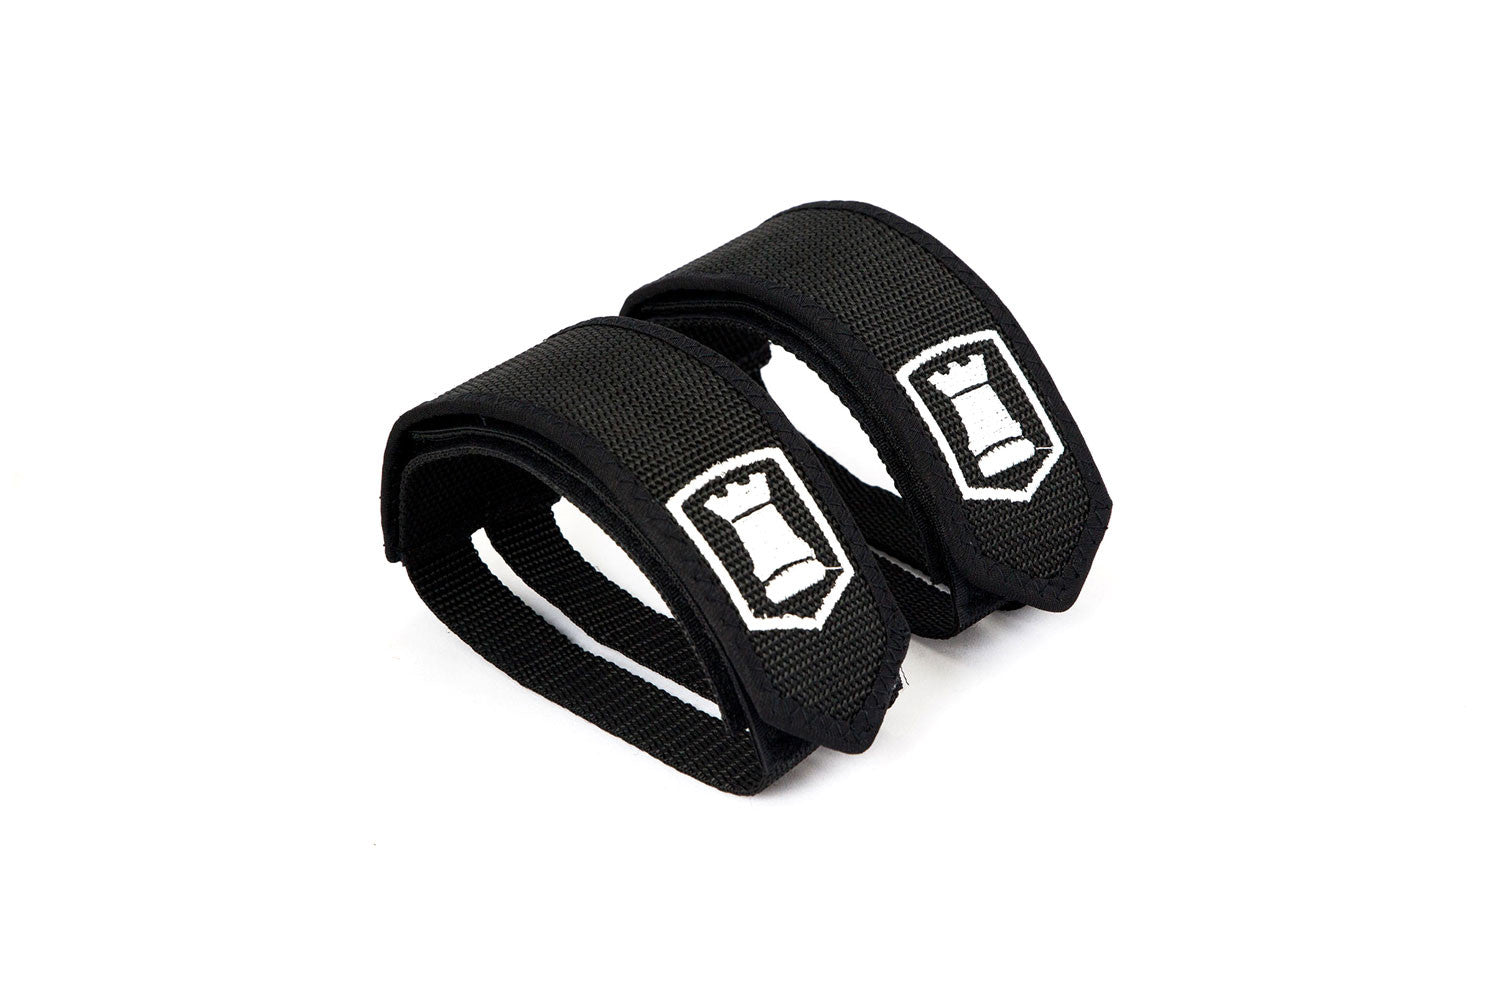 Power Foot Straps